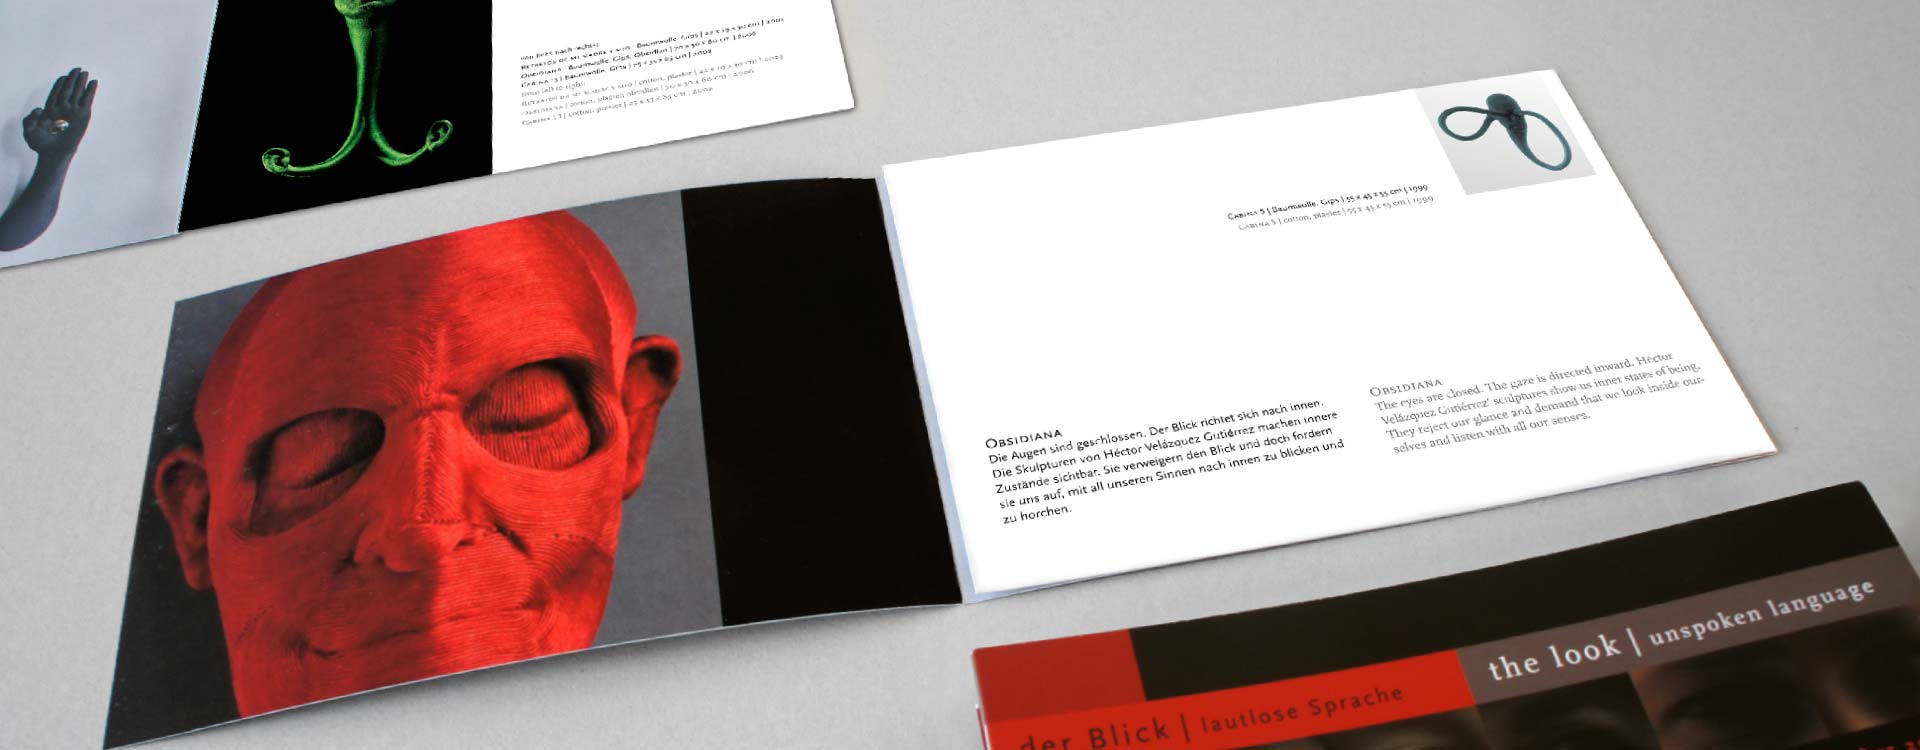 Leaflet about the work of Héctor Velázquez in the exhibition Der Blick; Design: Kattrin Richter | Graphic Design Studio